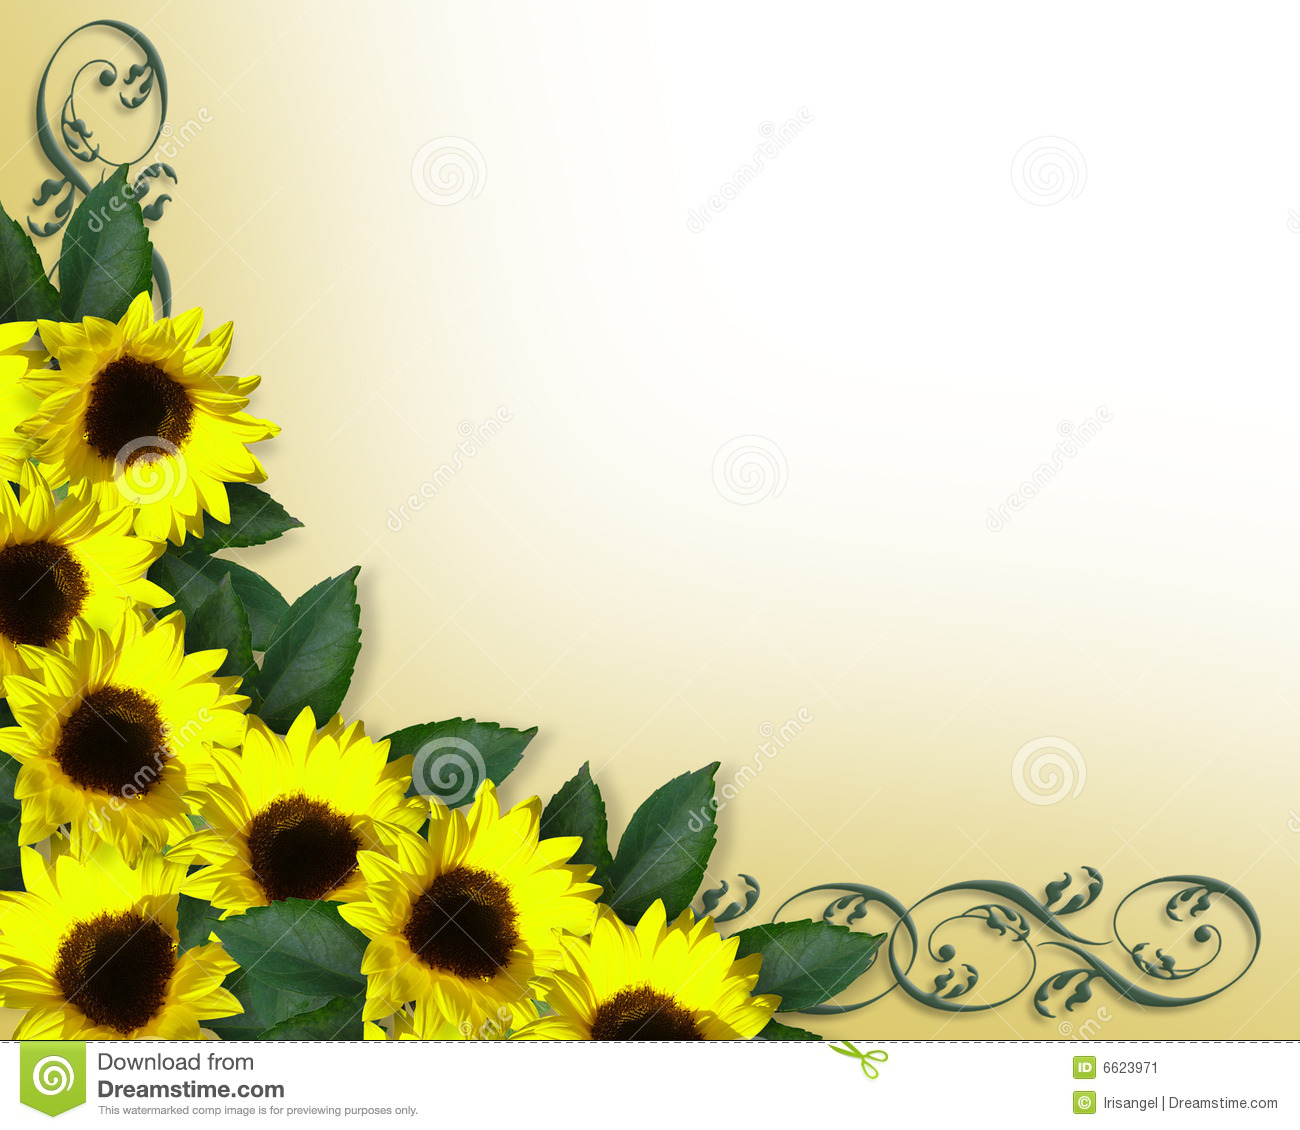 Pin Sunflower Border Clip Art Vector Online Royalty Free ...